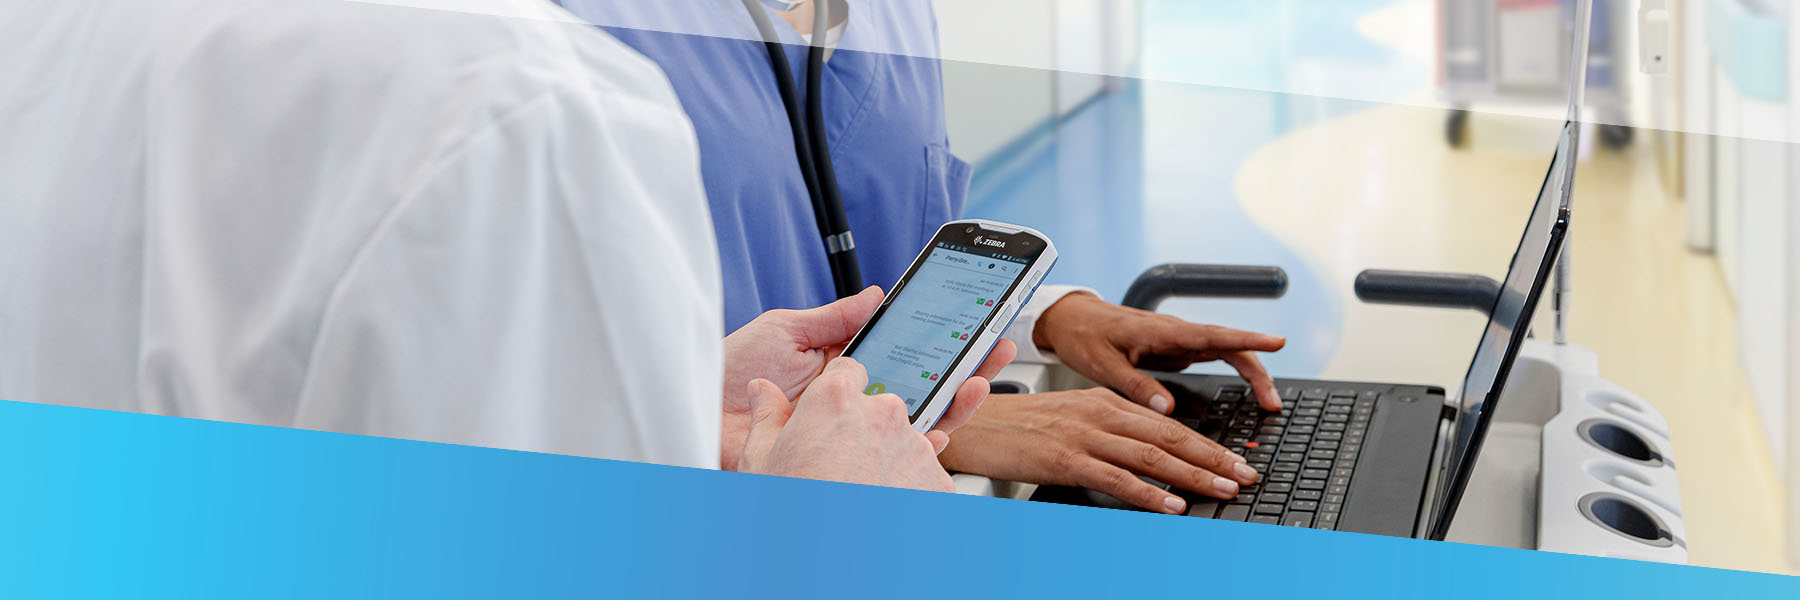 healthcare-mobility-banner